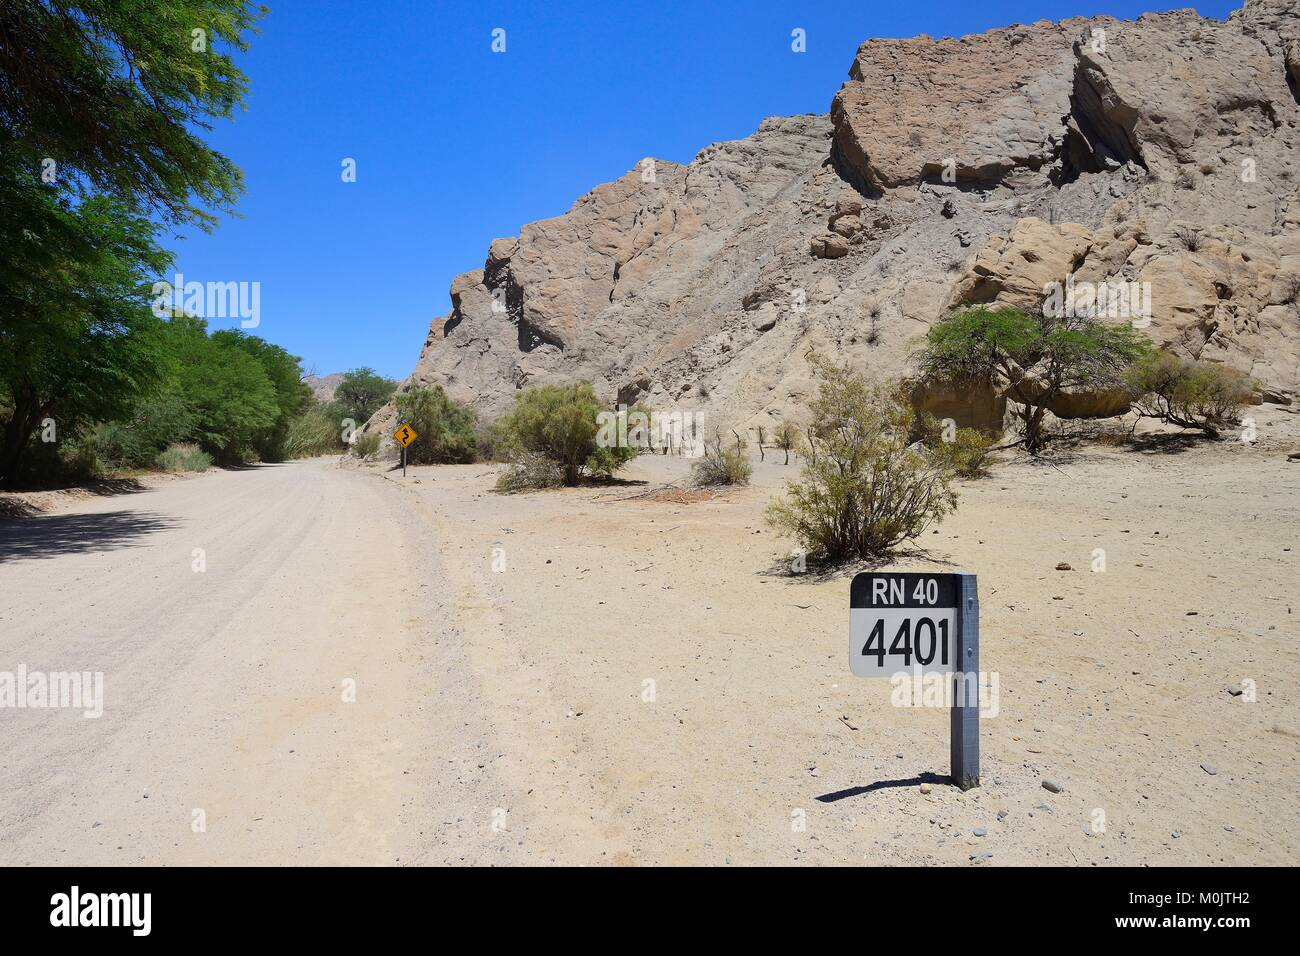 Signpost on the Route National RN 40 at KM 4401, near Cafayate, Salta, Argentina - Stock Image